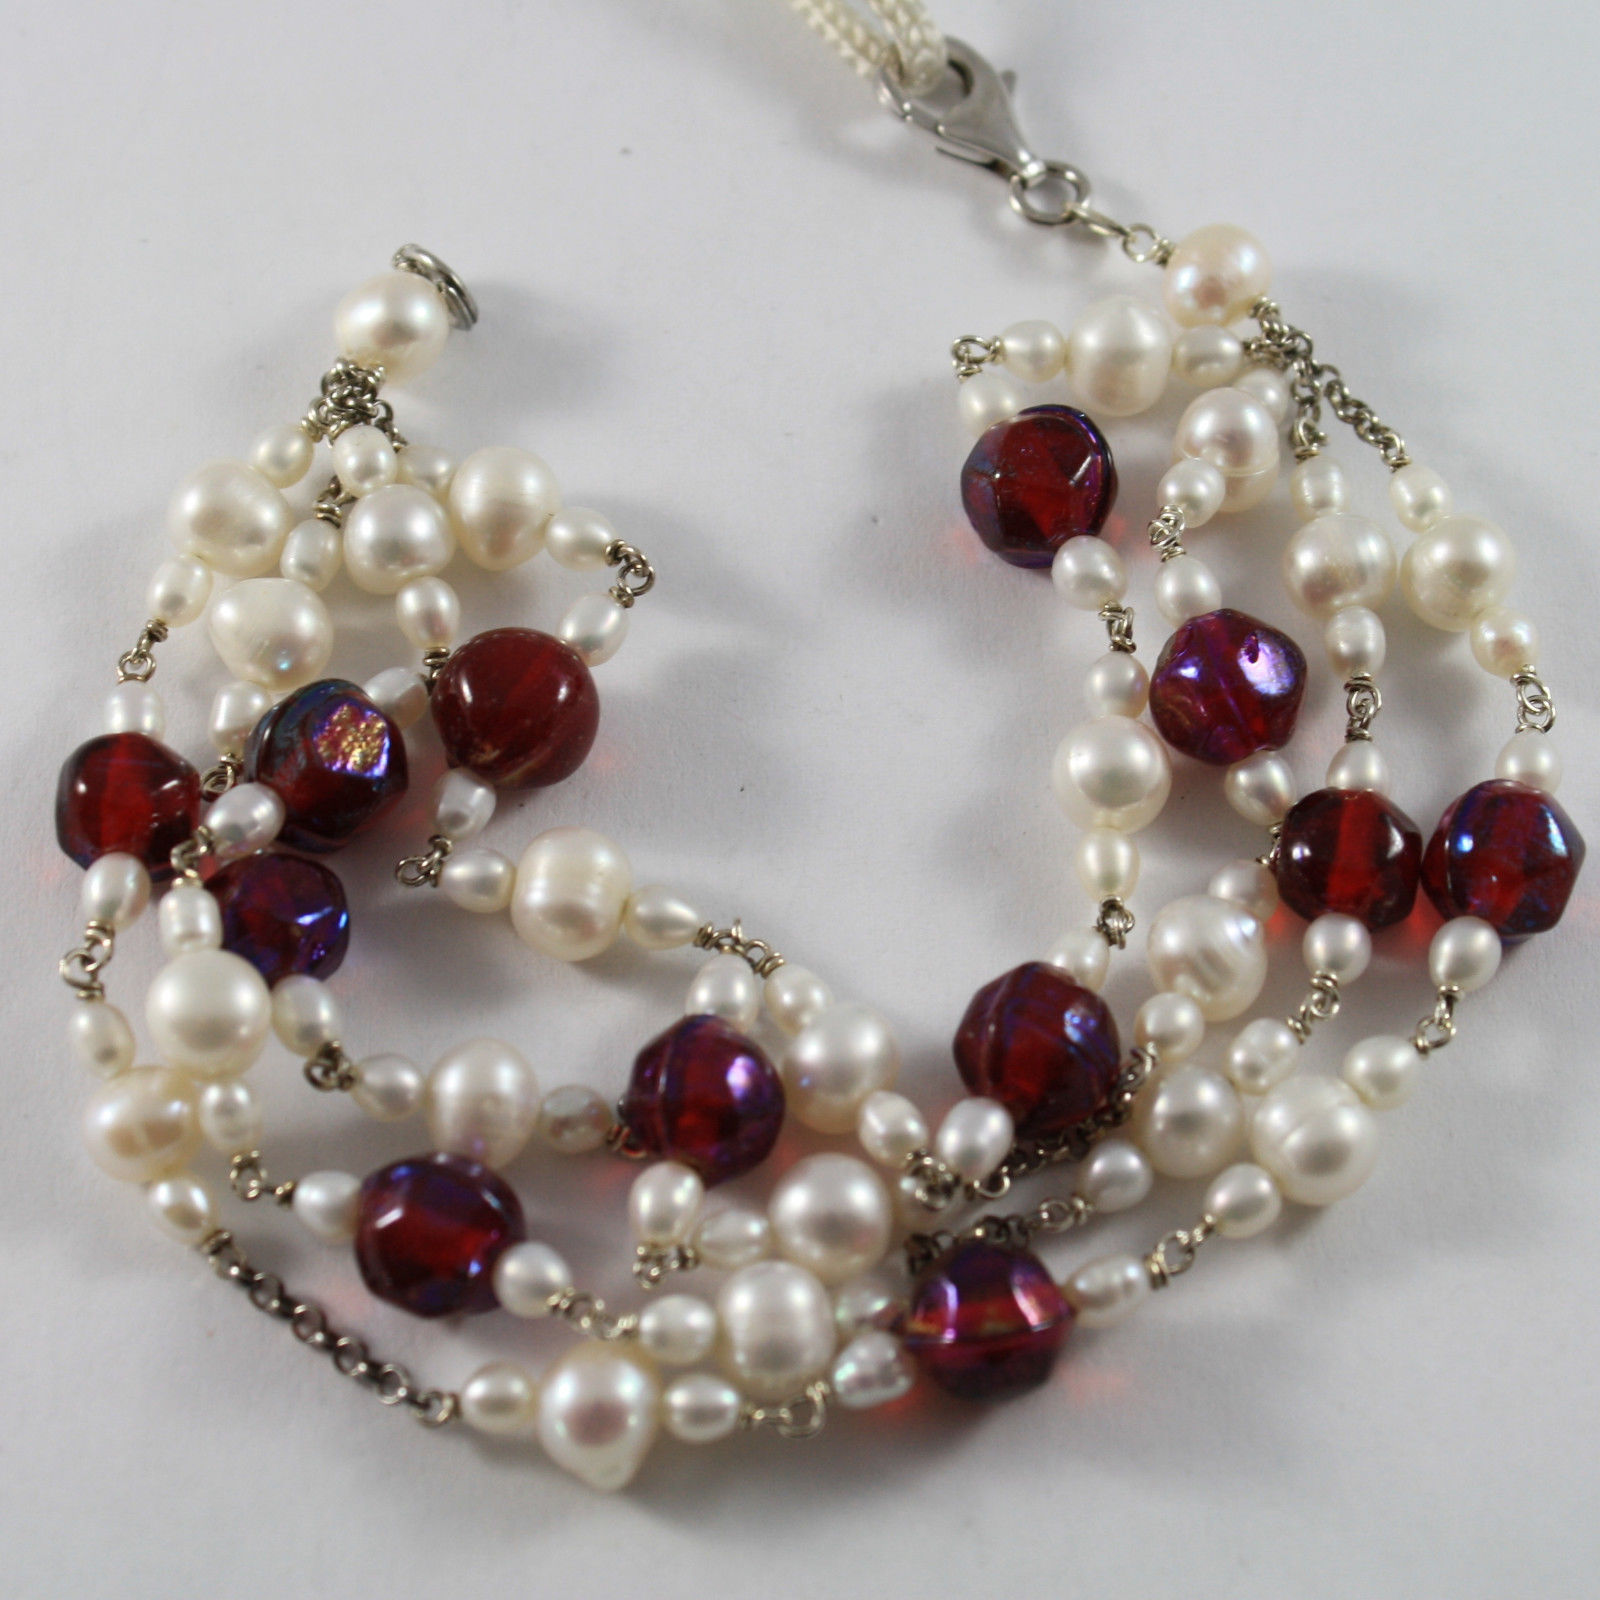 .925 RHODIUM SILVER MULTI STRAND BRACELET WITH WHITE PEARLS AND RED CRYSTAL